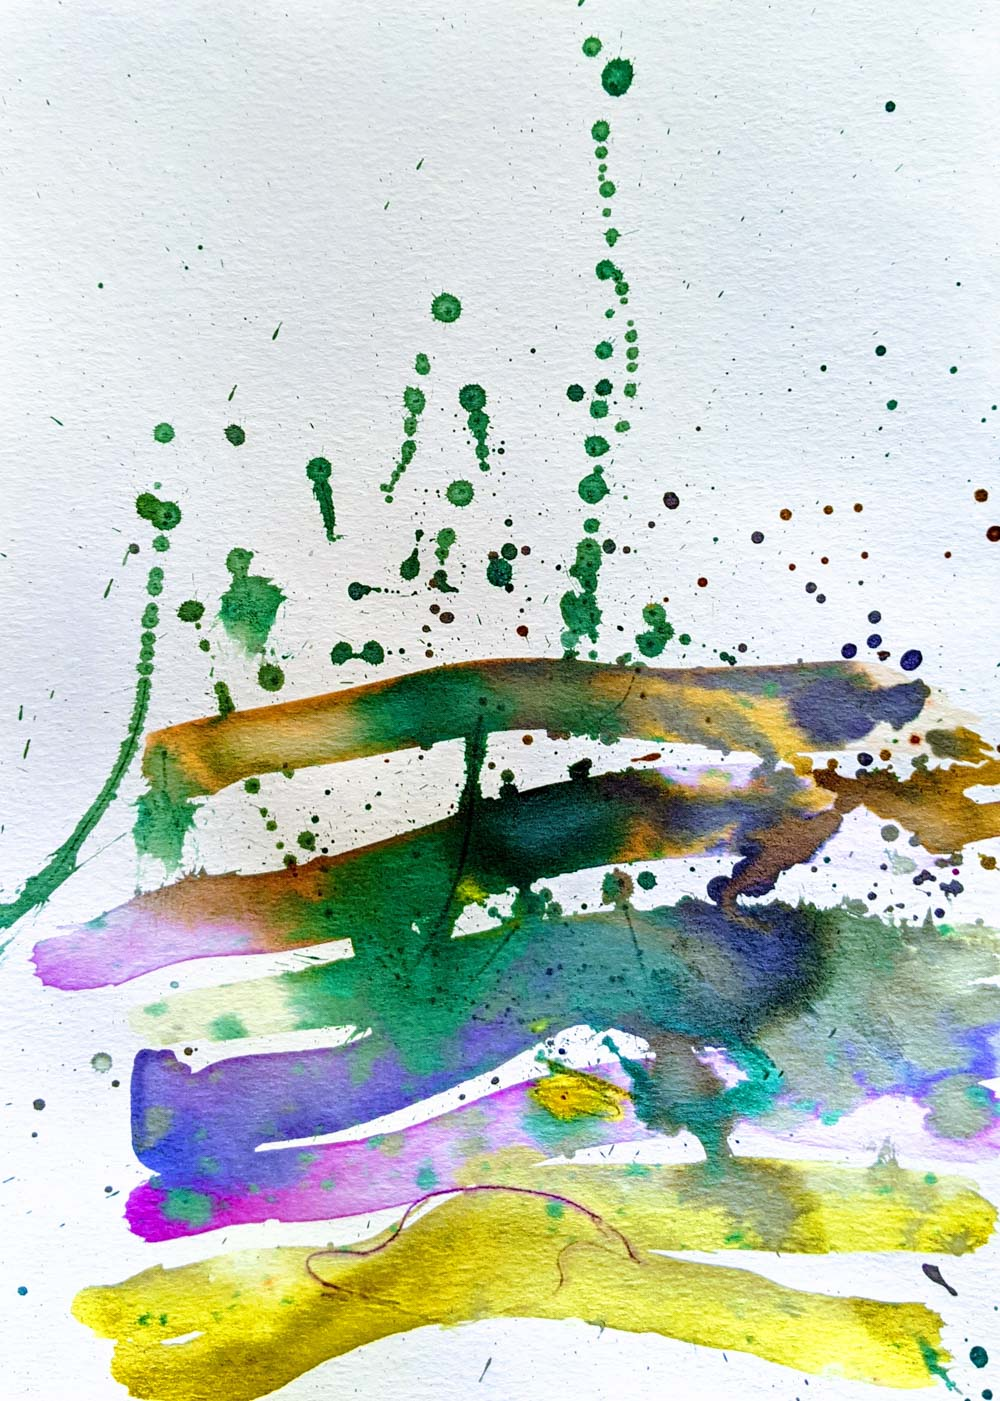 Abstract-watercolor-painting-48193